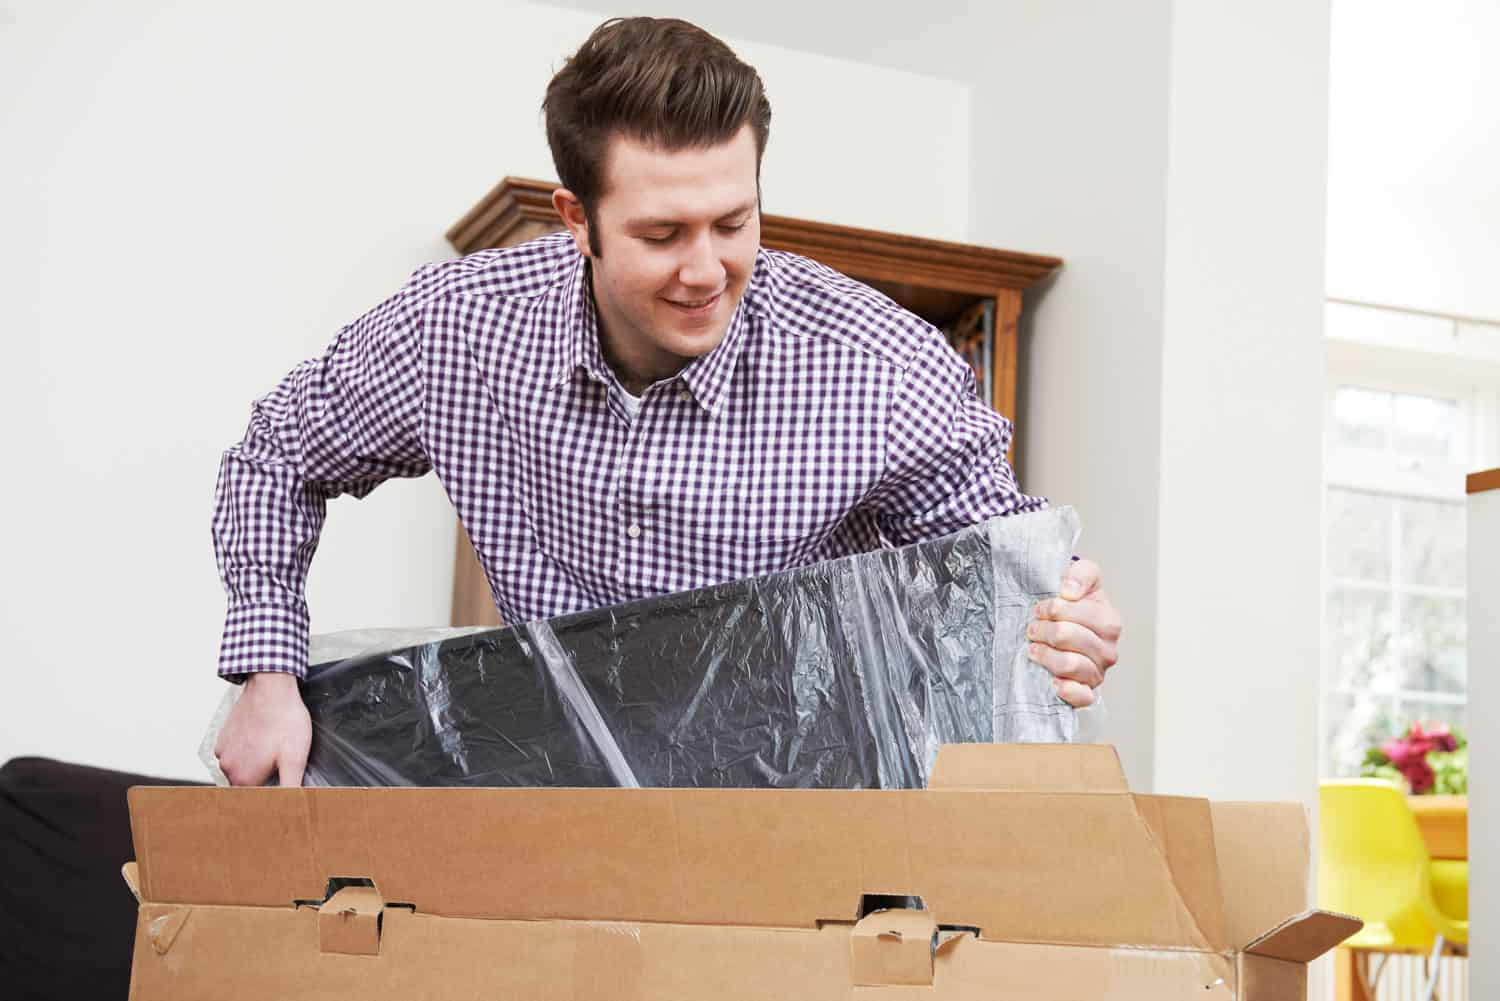 photo of man unpacking a TV